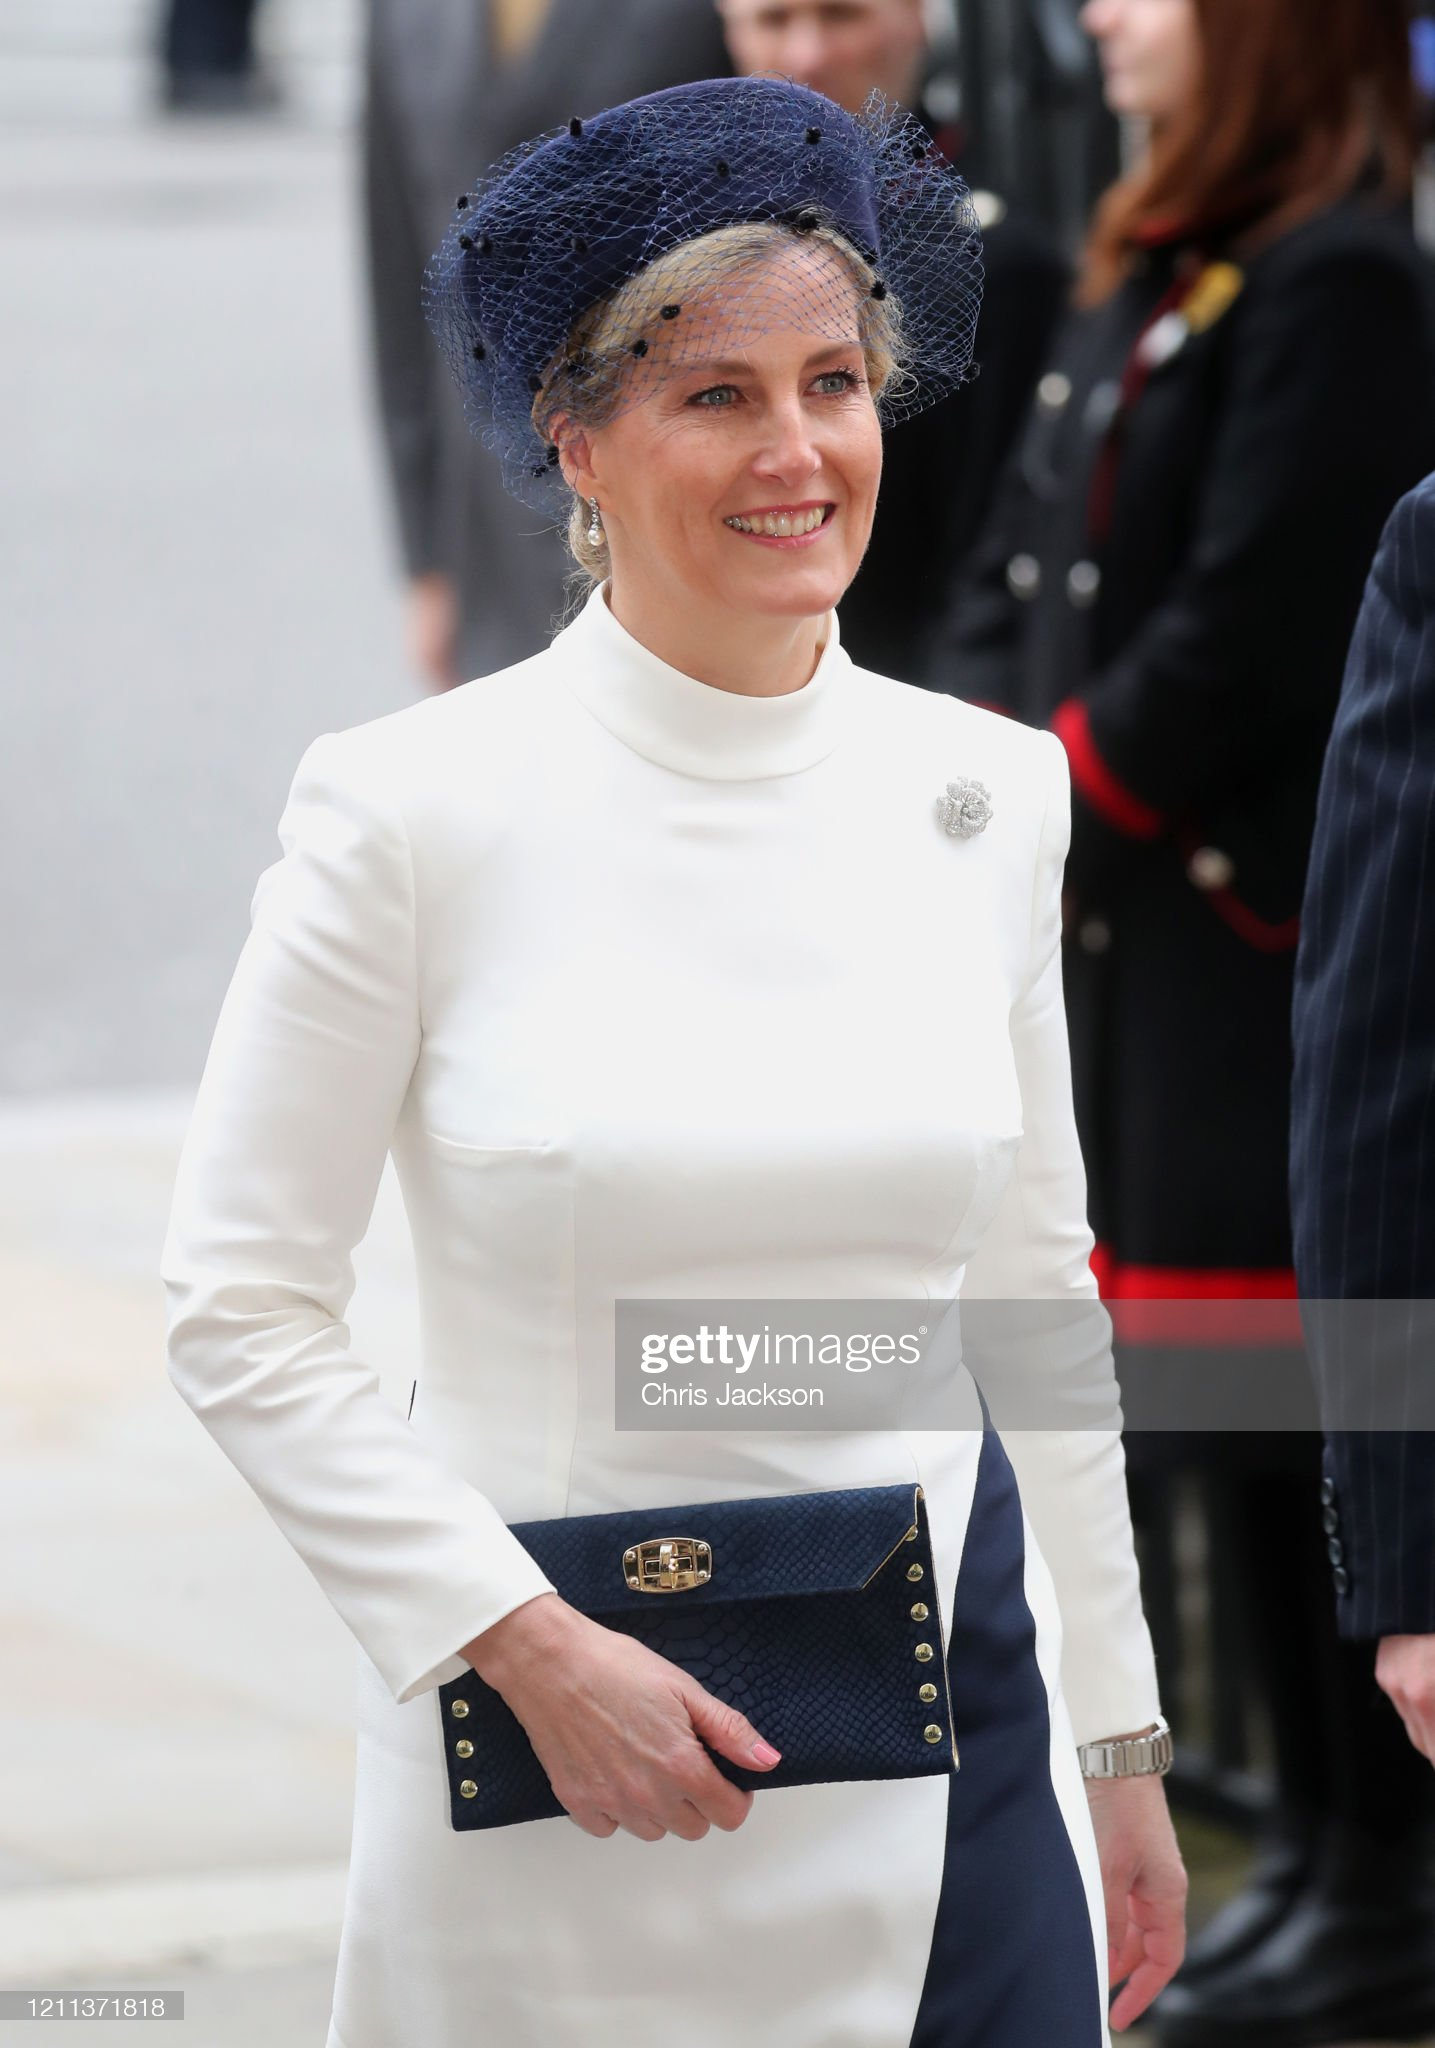 https://media.gettyimages.com/photos/sophie-countess-of-wessex-attends-the-commonwealth-day-service-2020-picture-id1211371818?s=2048x2048